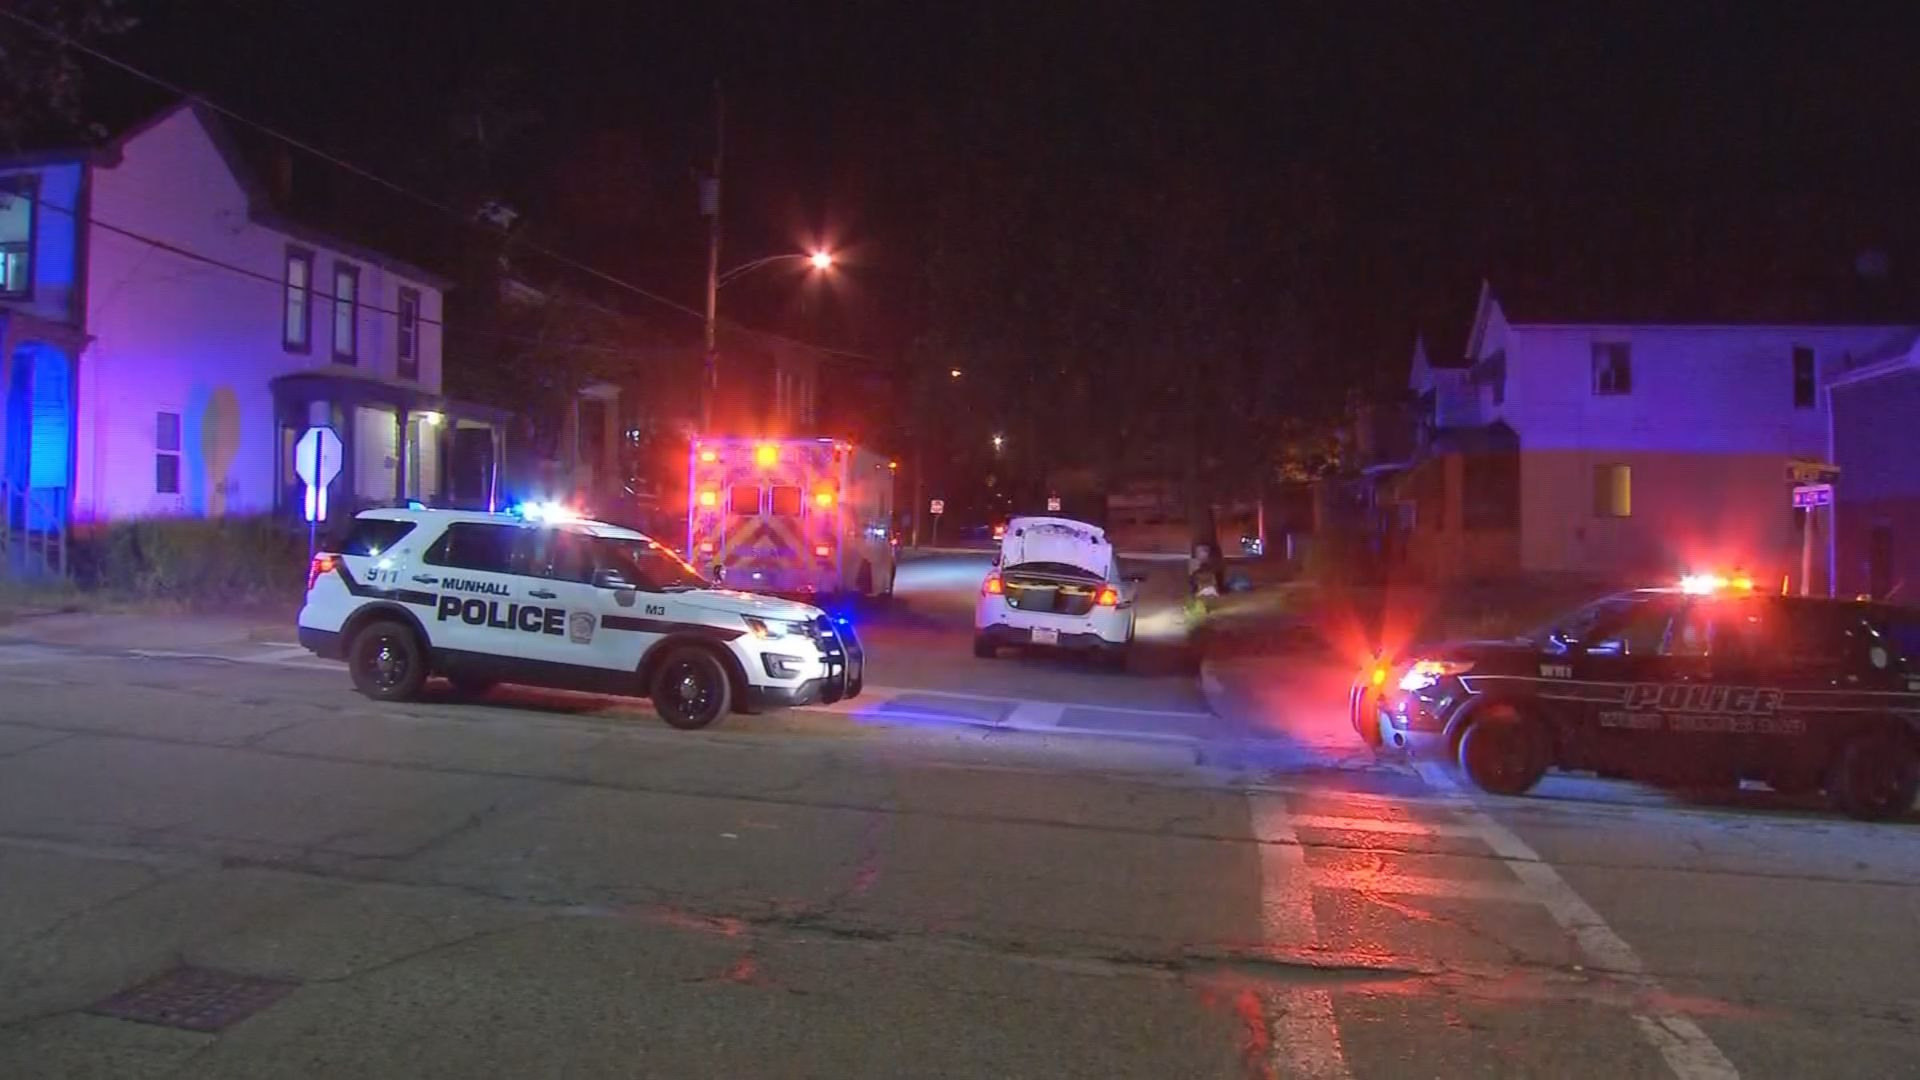 Man dies at hospital after shooting in Homestead